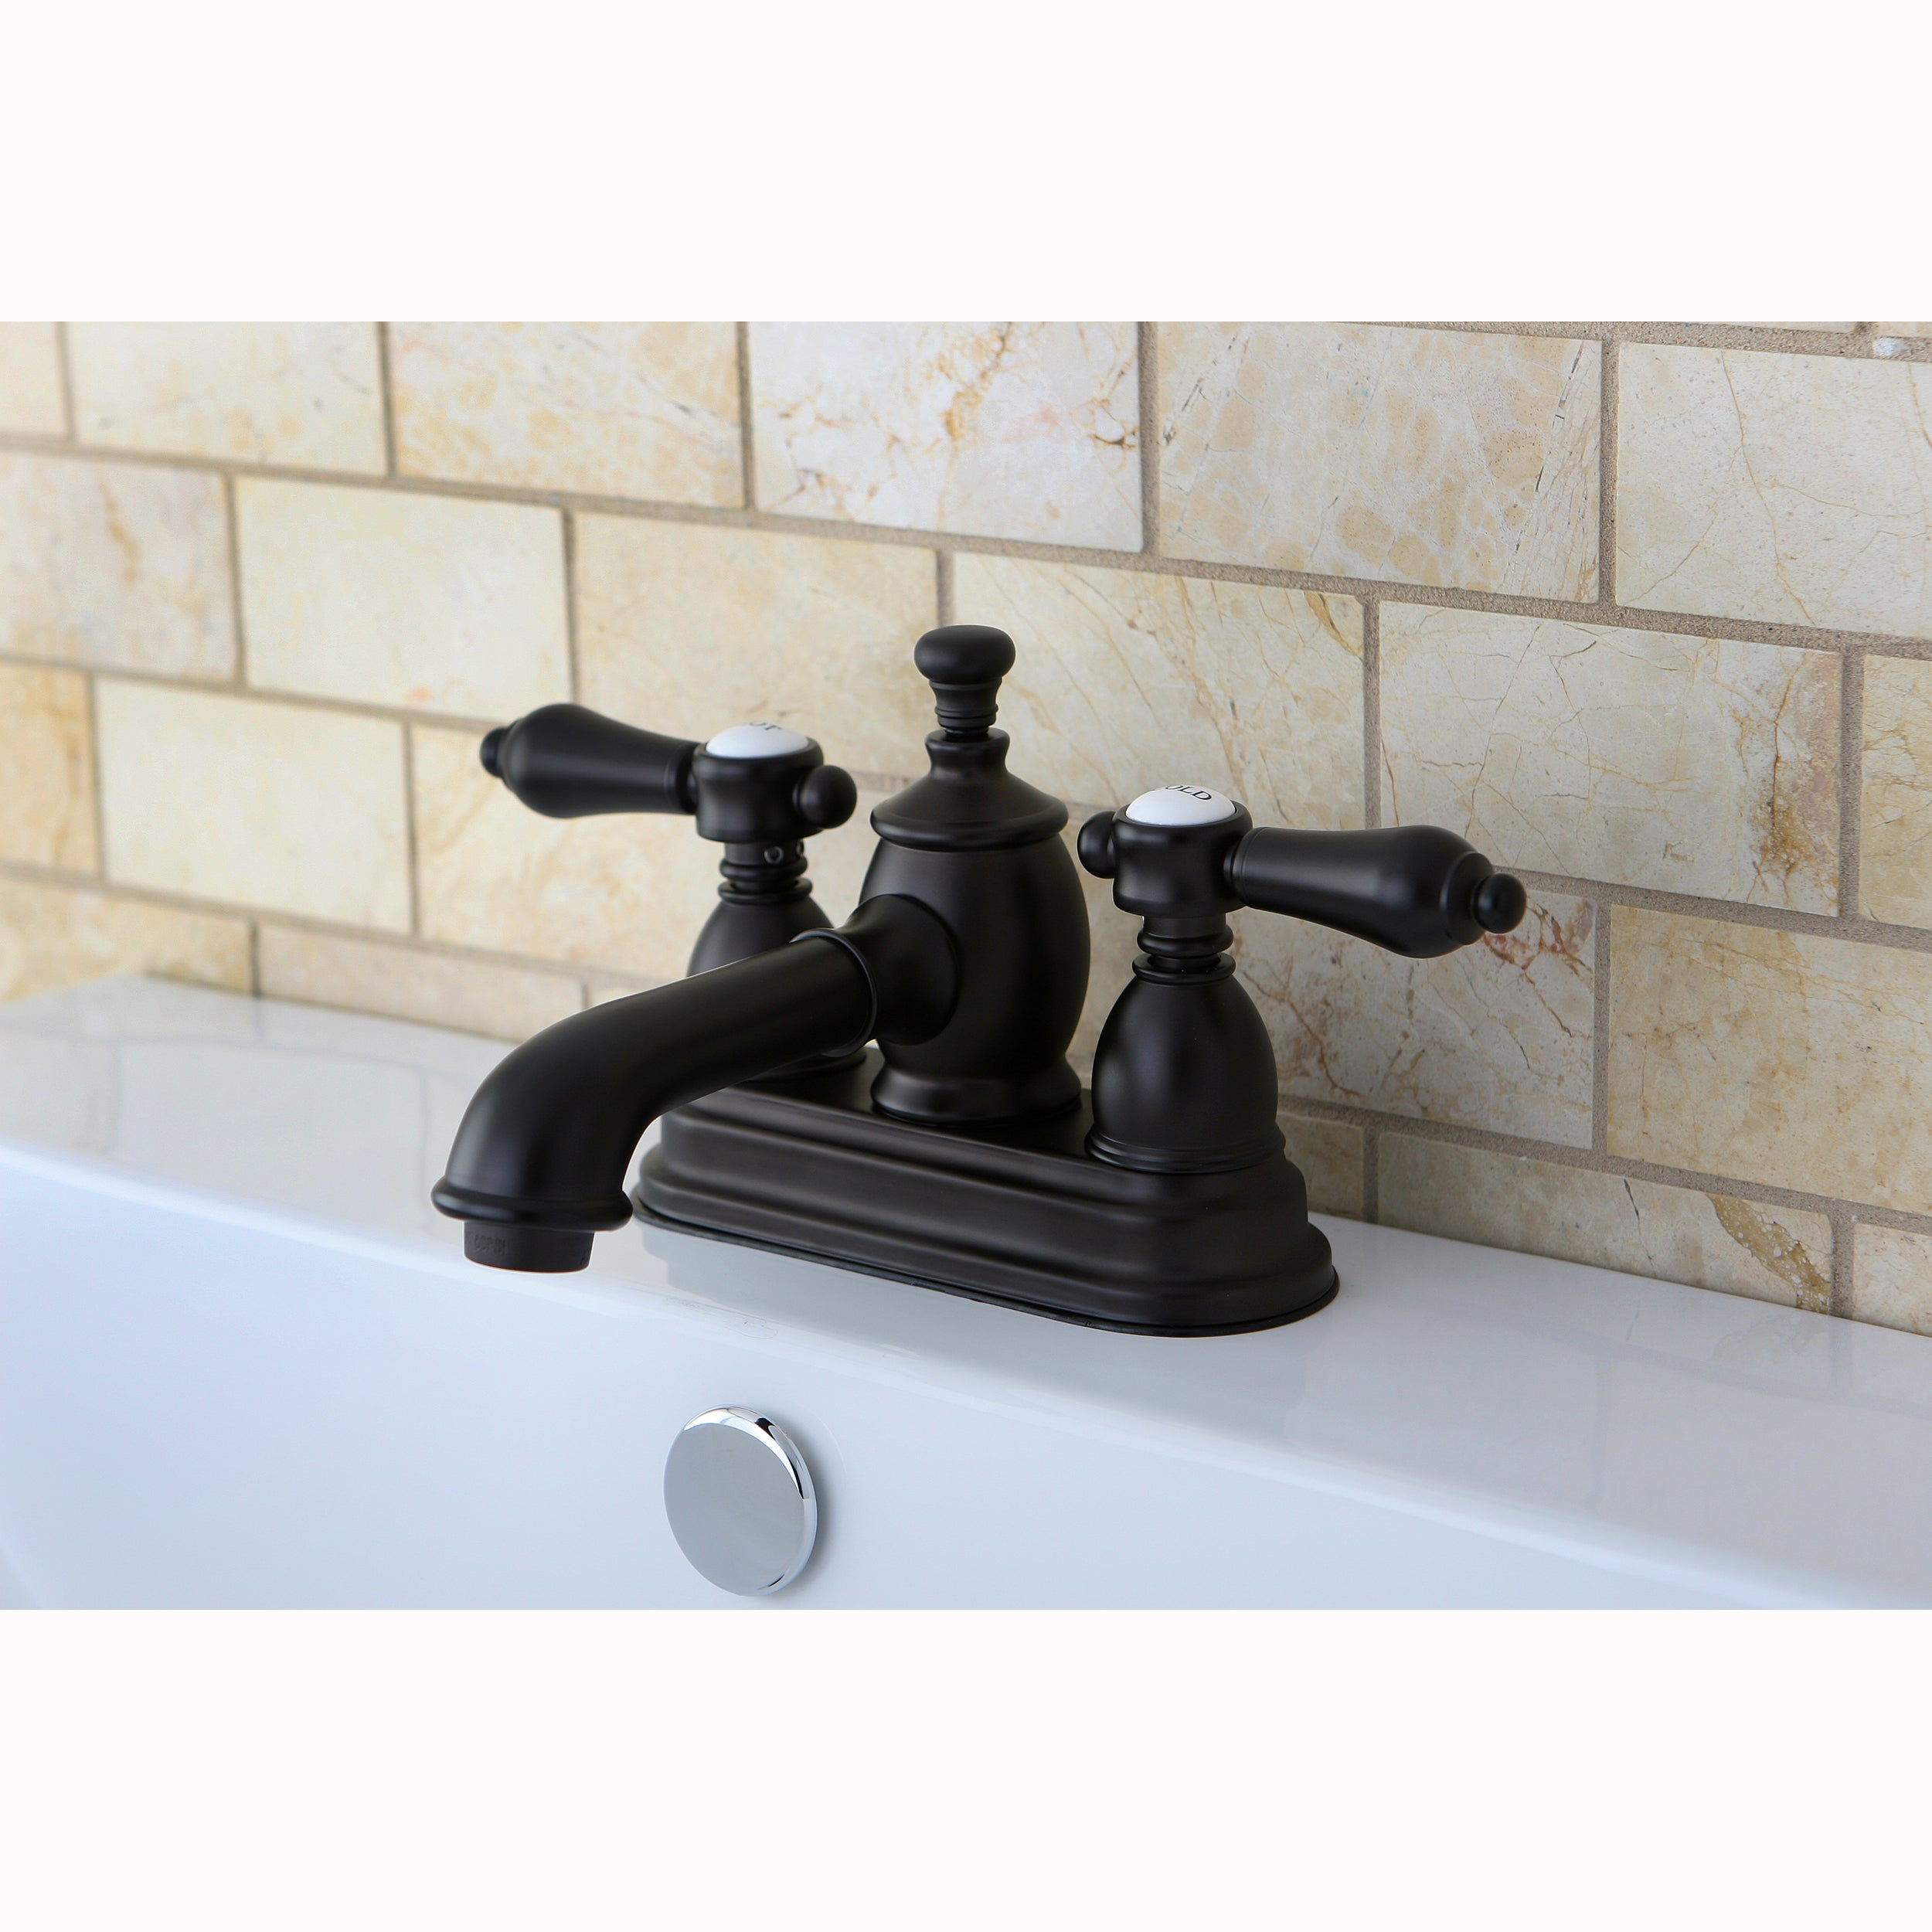 Oil Rubbed Bronze Widespread Bathroom Faucet - Free Shipping Today ...